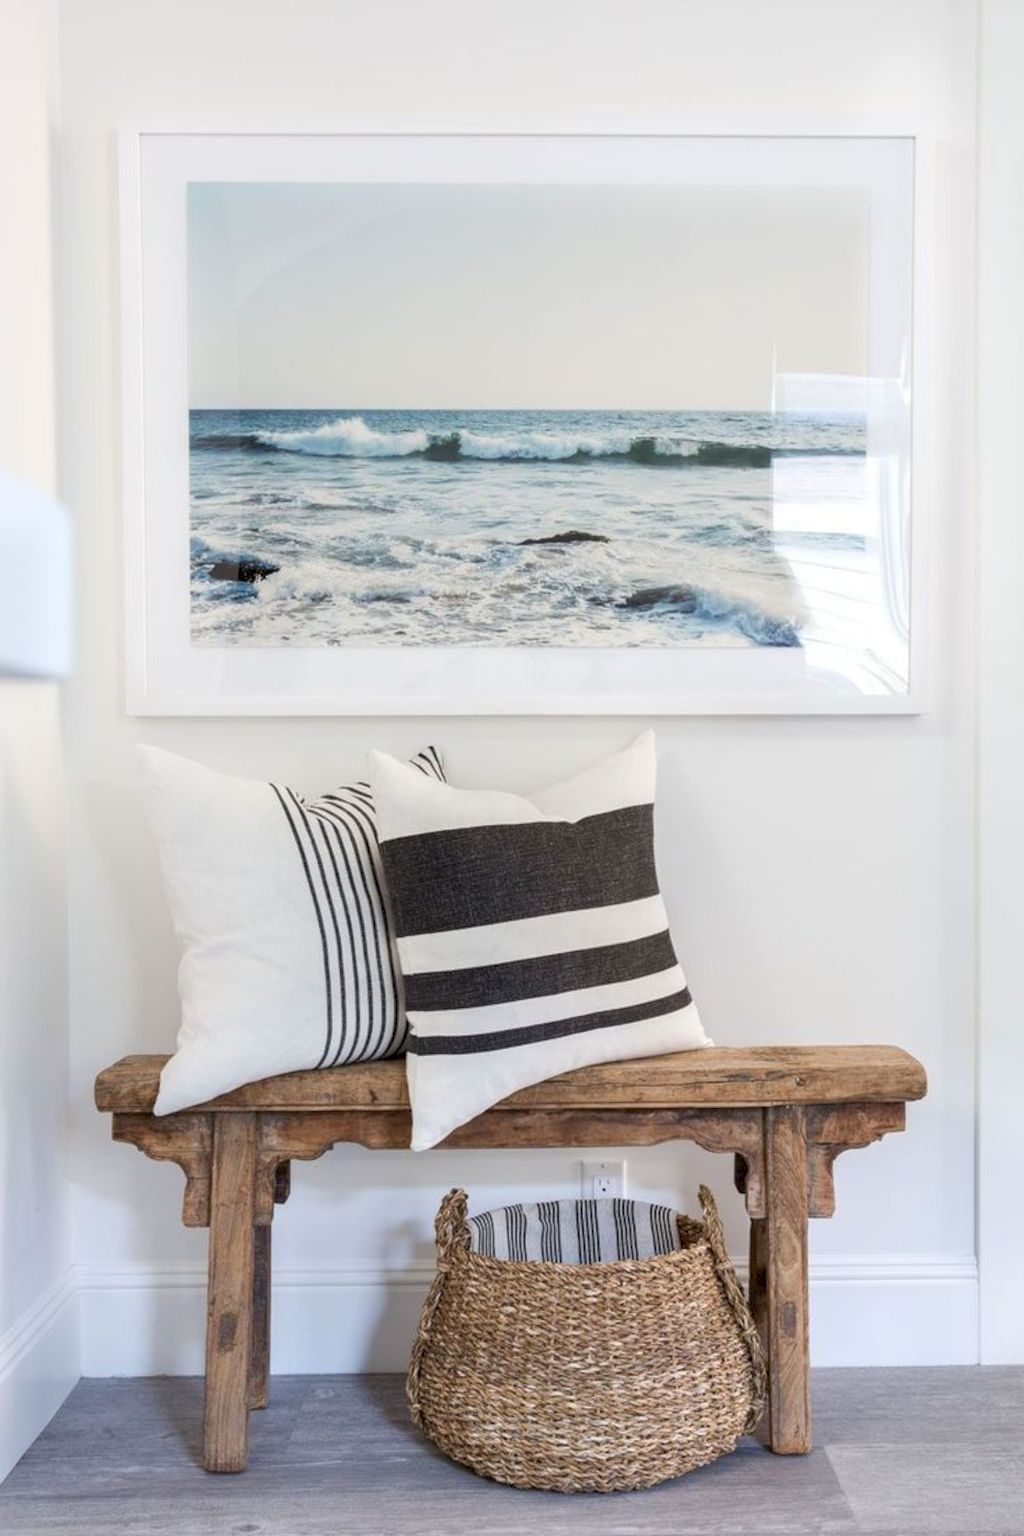 Coastal Chic Decoration With Nautical Accessories Showing A Fresh